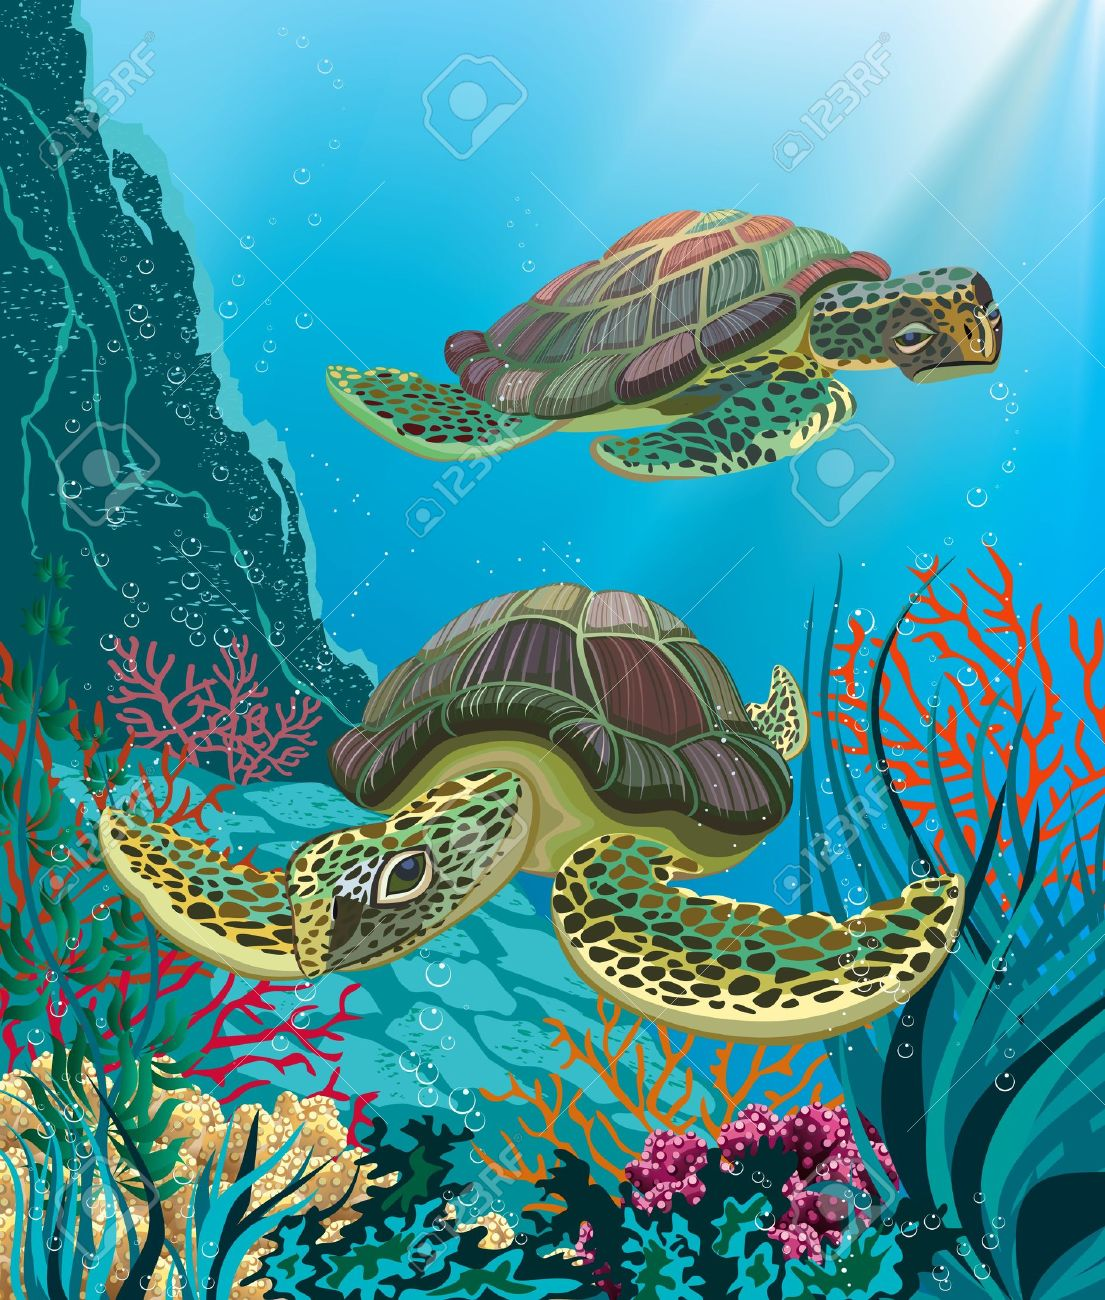 illustration of two sea turtles swimming underwater royalty free